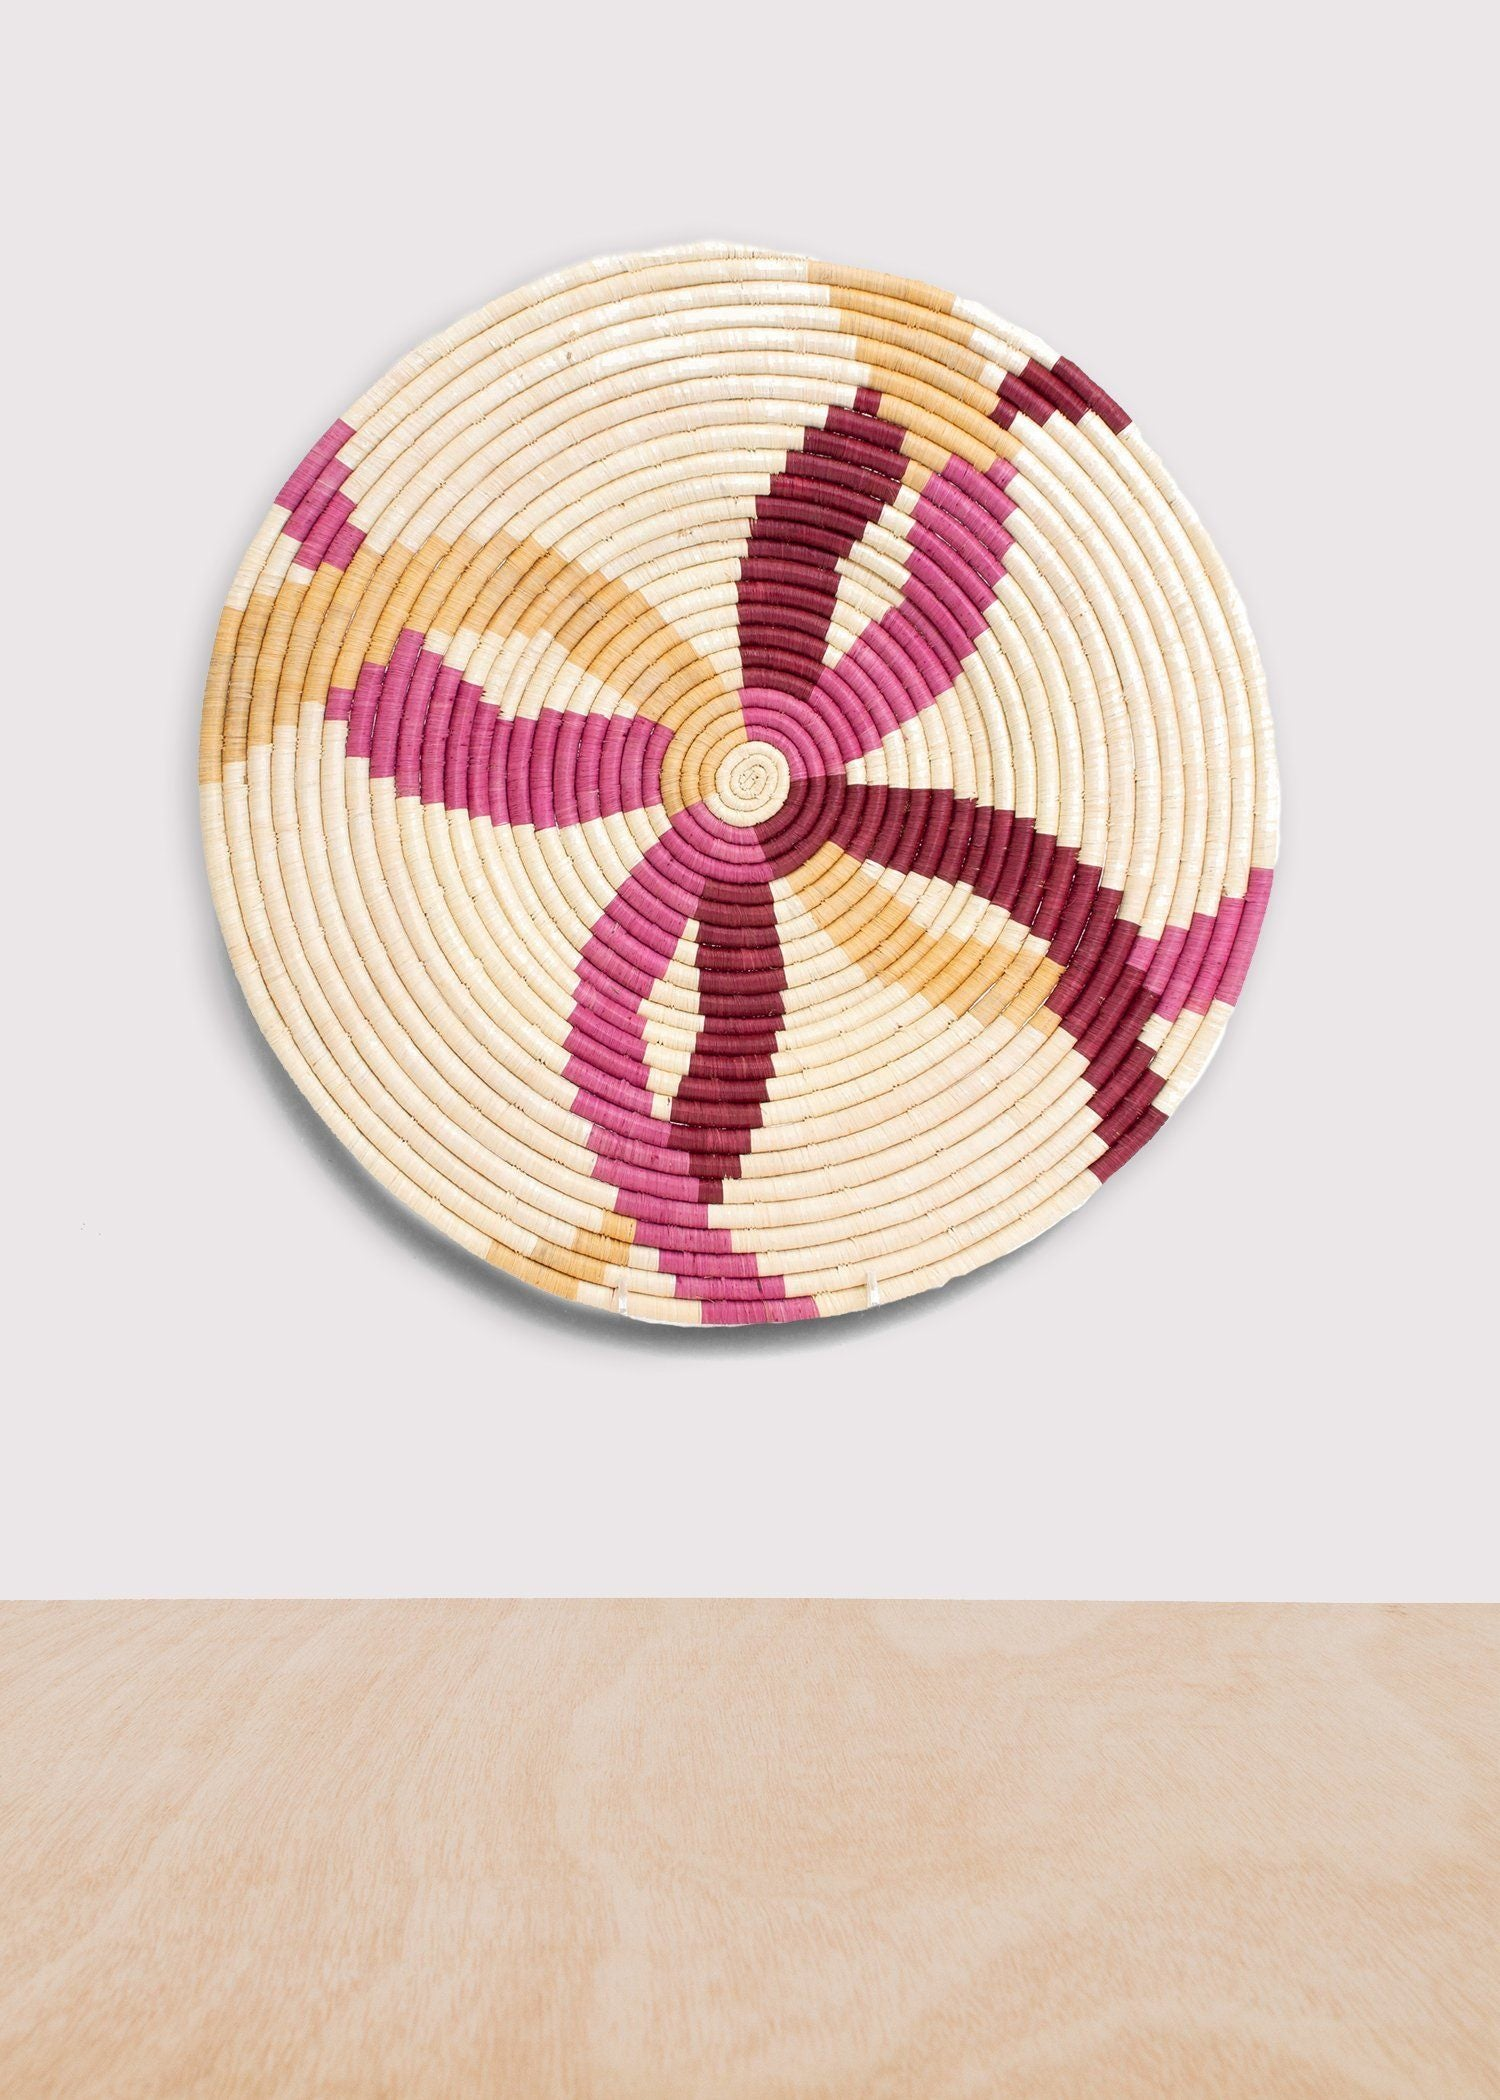 KAZI Rosette Color Blocked Large Raffia Plate KAZI